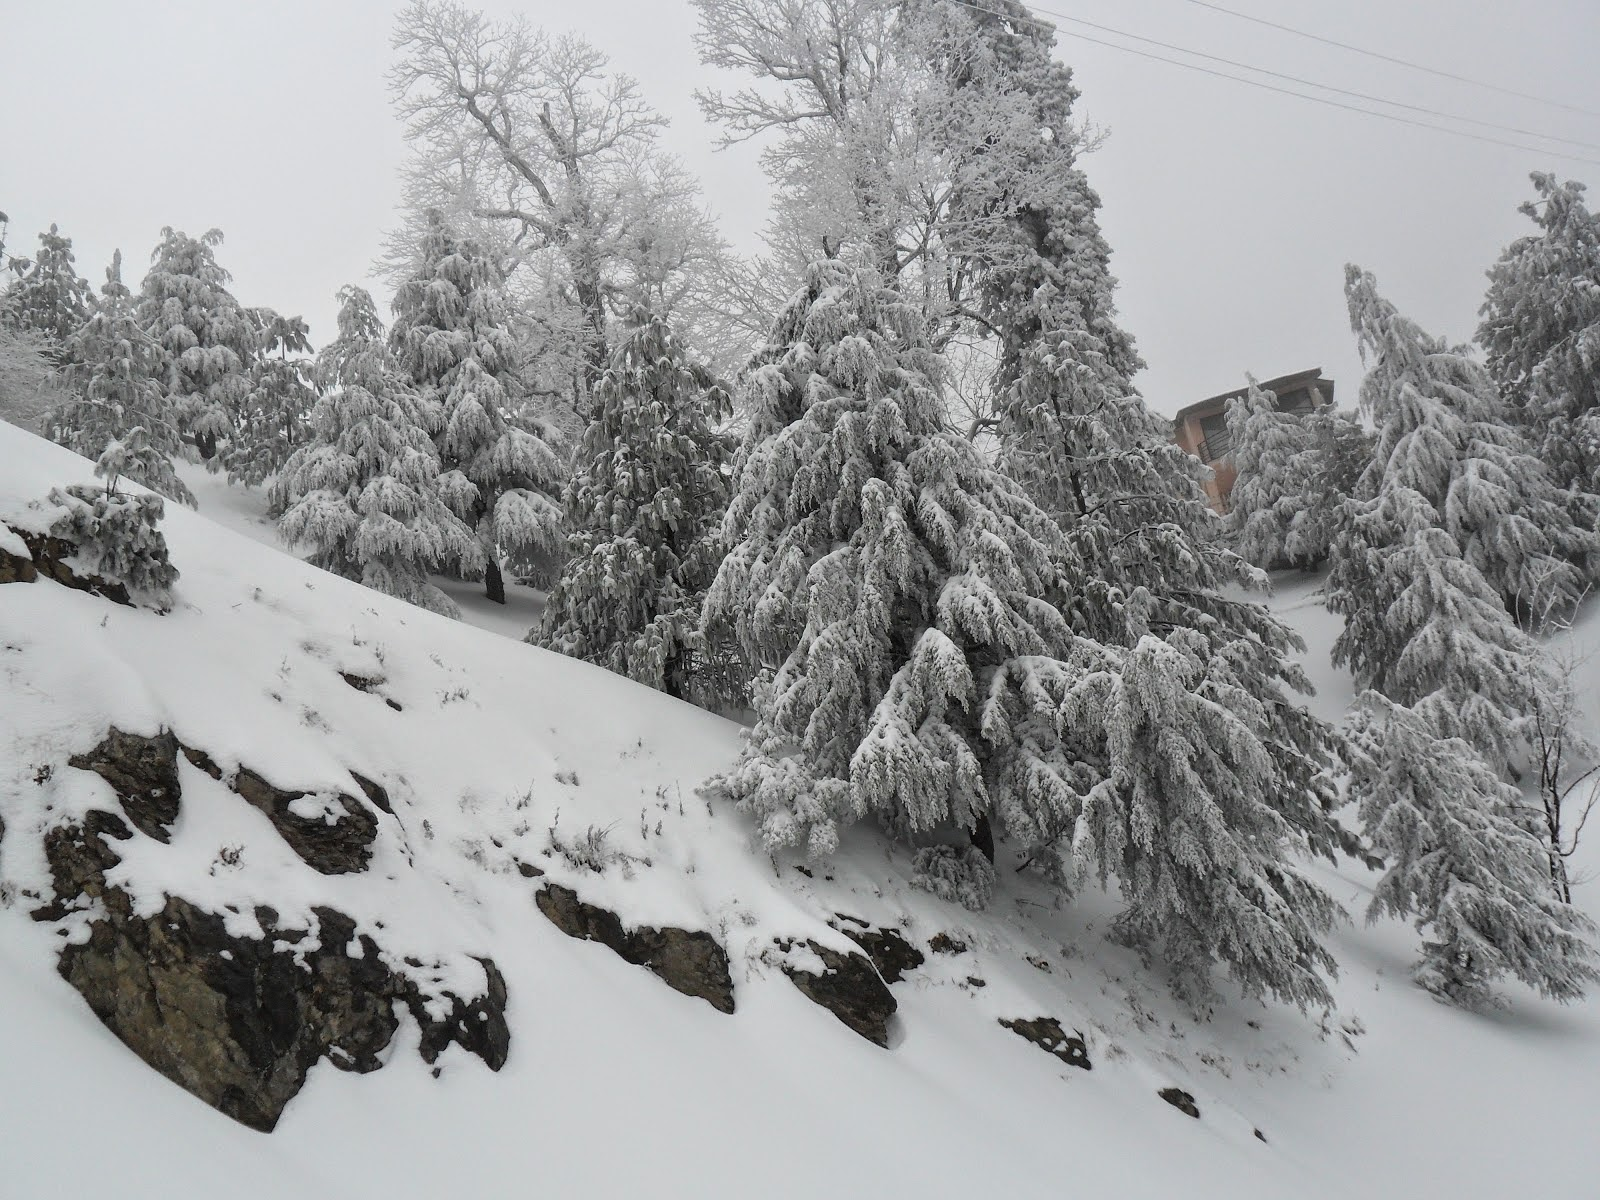 Wallpapers Of Snow Fall Hd Wallpapers Tourist Places Of Pakistan Hd Wallpapers